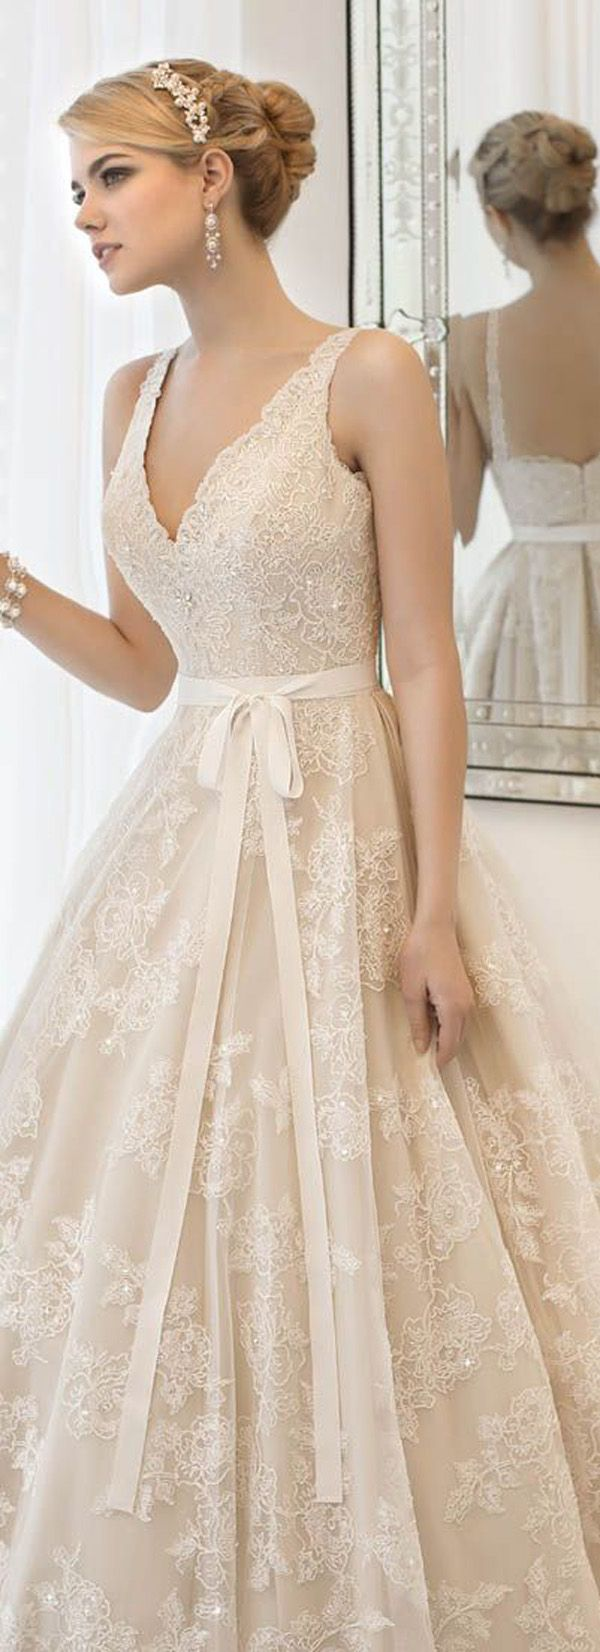 25  best ideas about Vintage wedding dresses on Pinterest ...